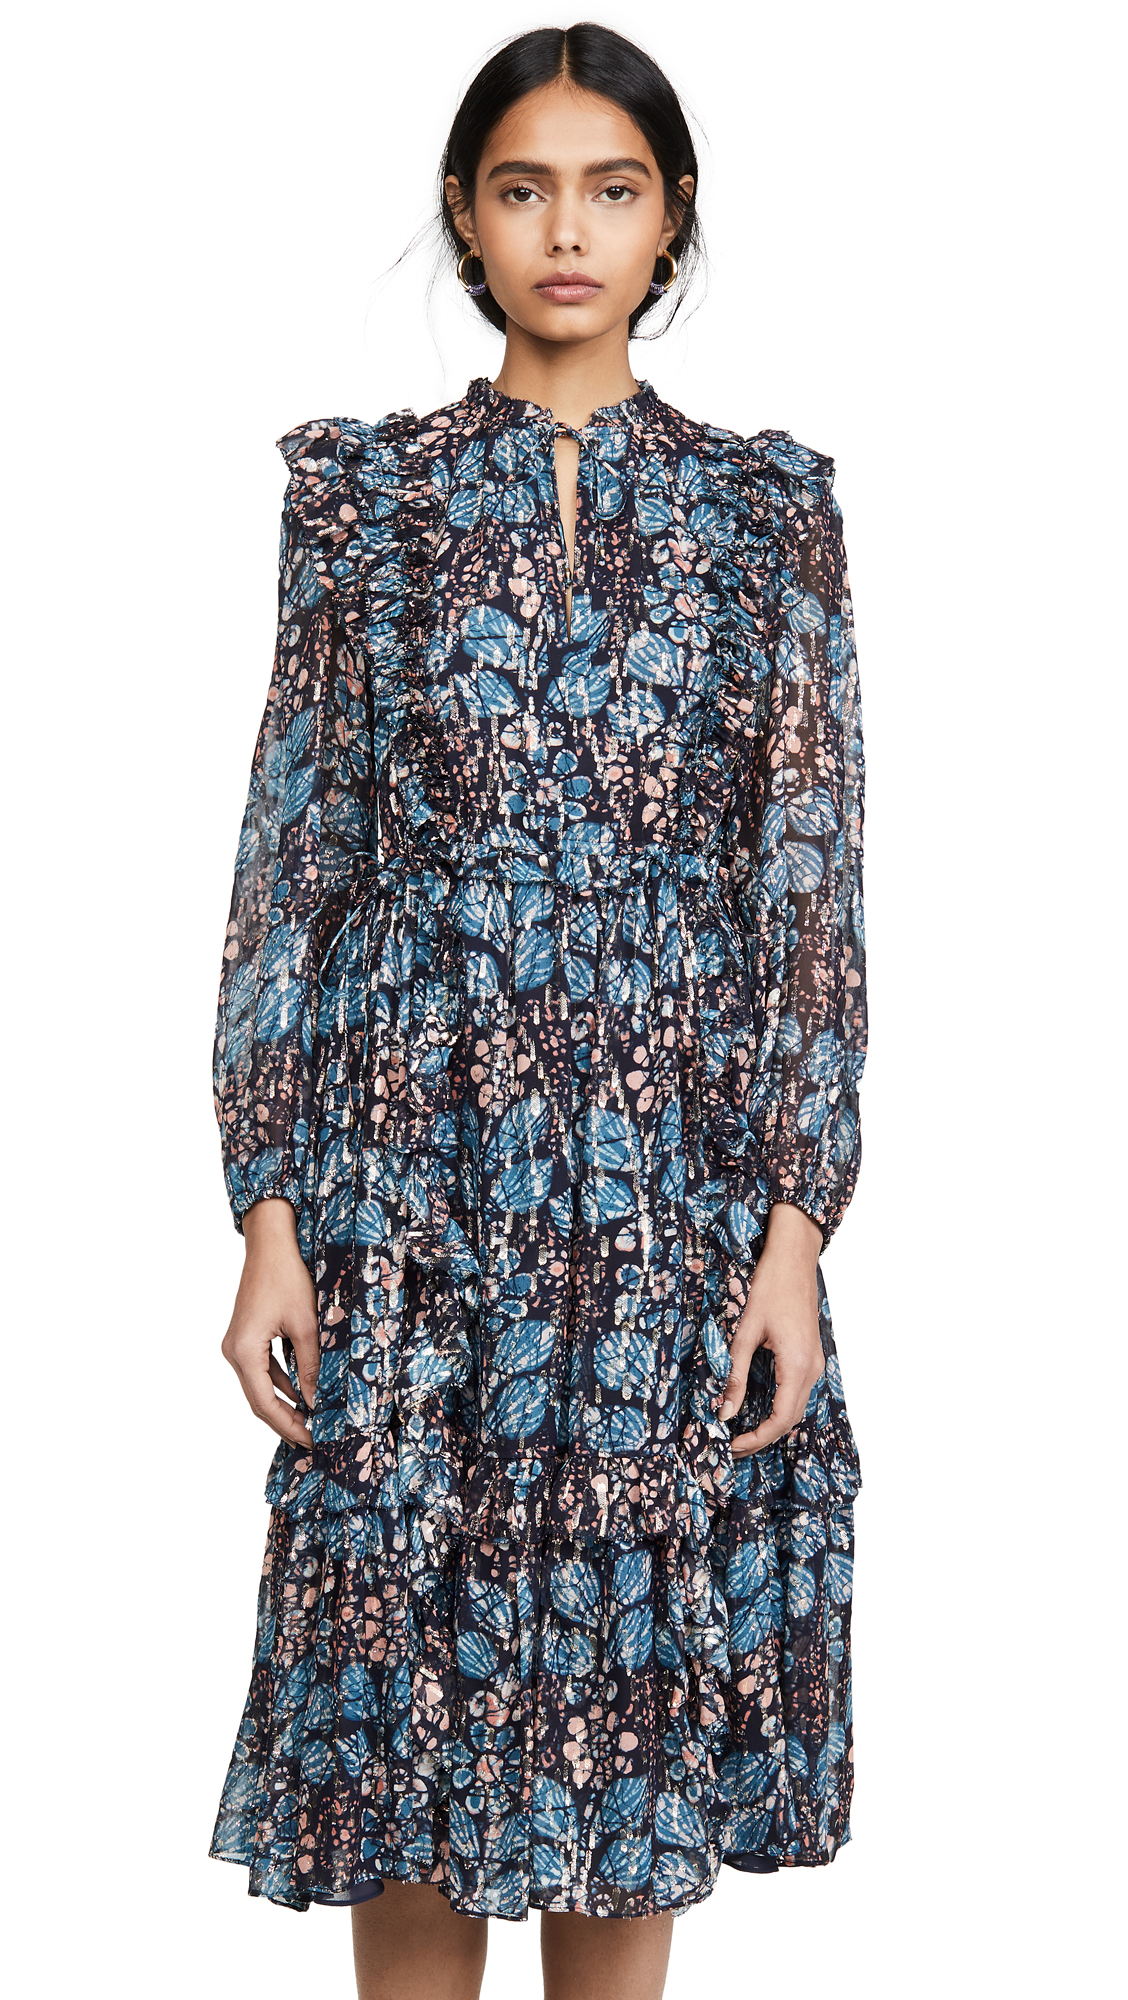 Ulla Johnson Seraphina Dress - 50% Off Sale